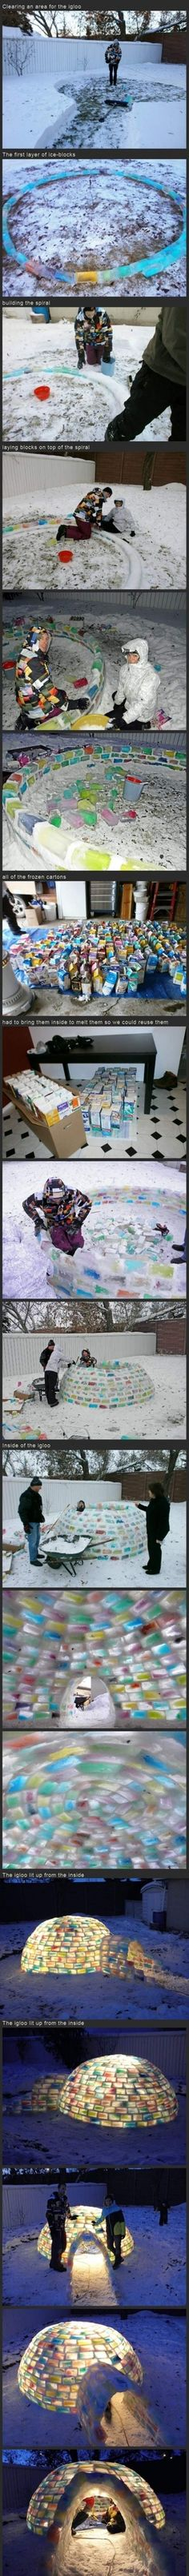 What This Couple Built In Their Snowy Backyard Made Me Insanely Jealous…